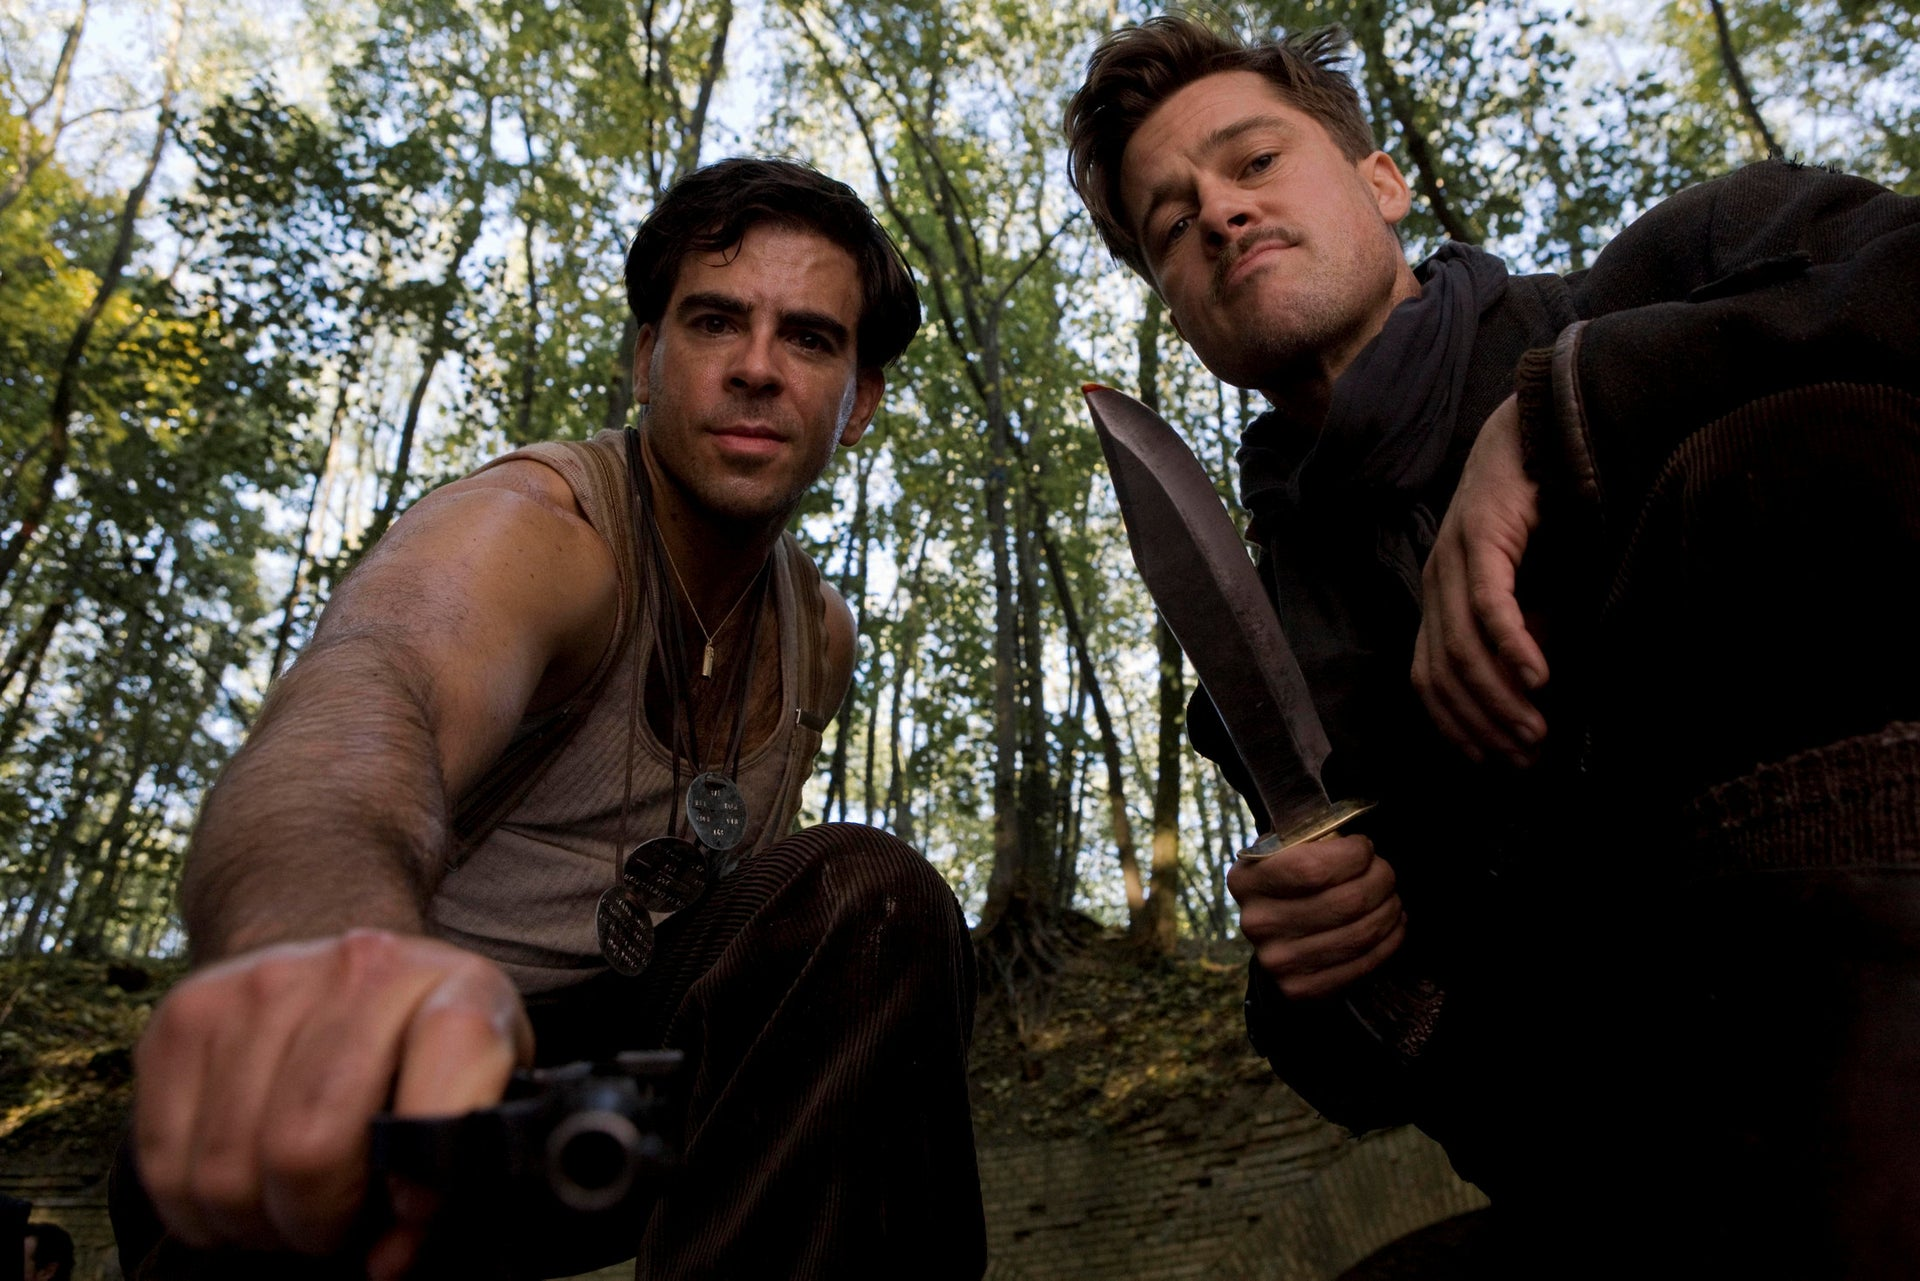 """Actors Eli Roth, left, and Brad Pitt perform in a scene from the movie """"Inglourious Basterds."""""""